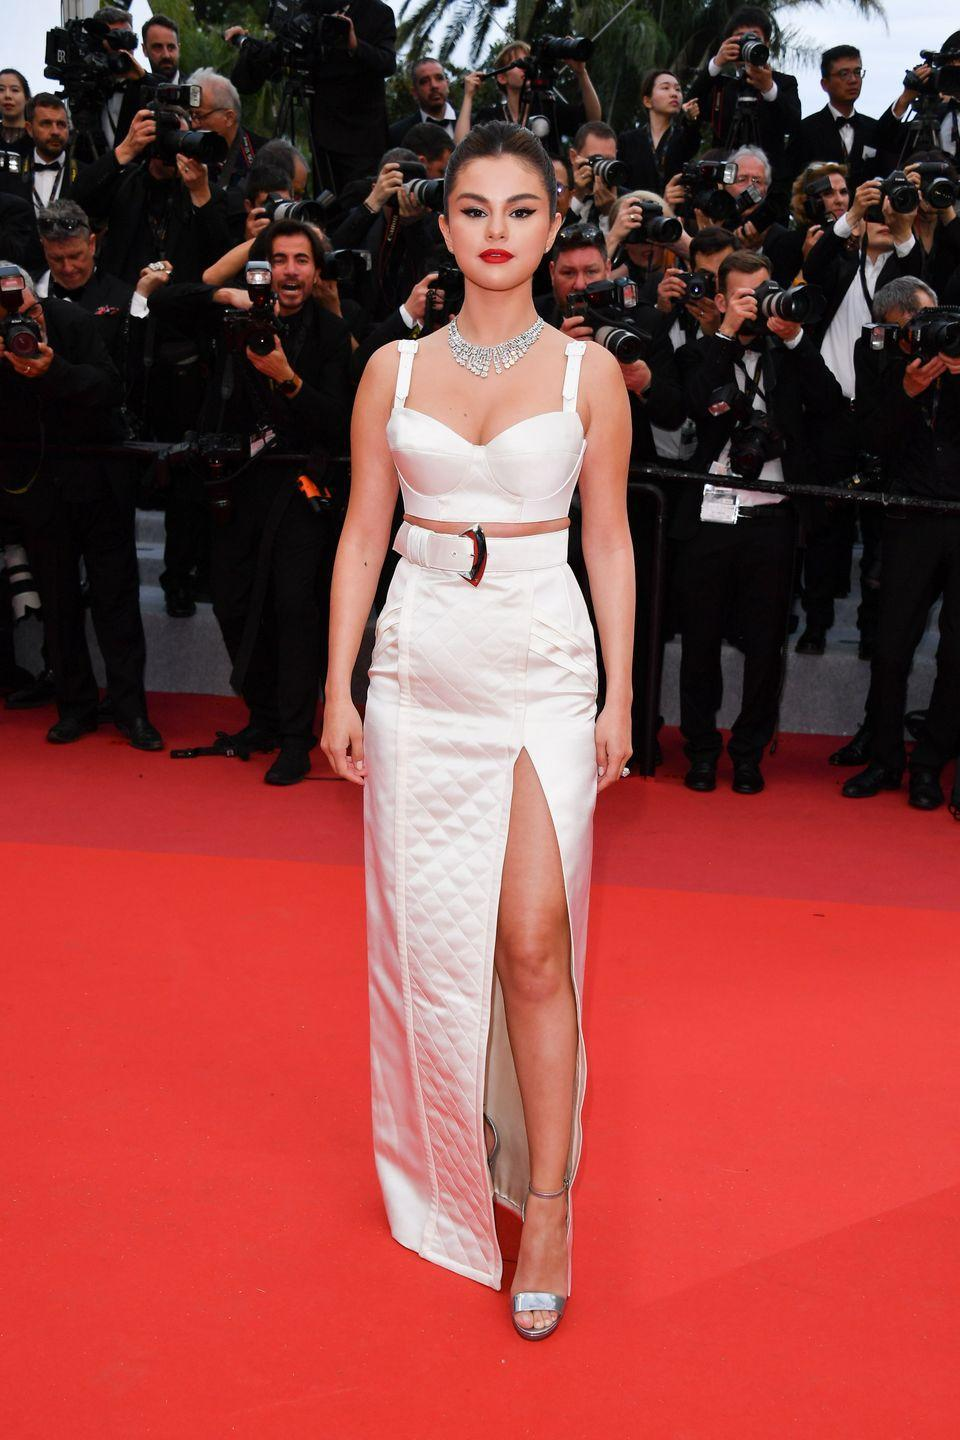 <p>Wearing a Louis Vuitton bustier and skirt combo with Bulgari jewels to the Cannes premiere of <em>The Dead Don't Die.</em></p>